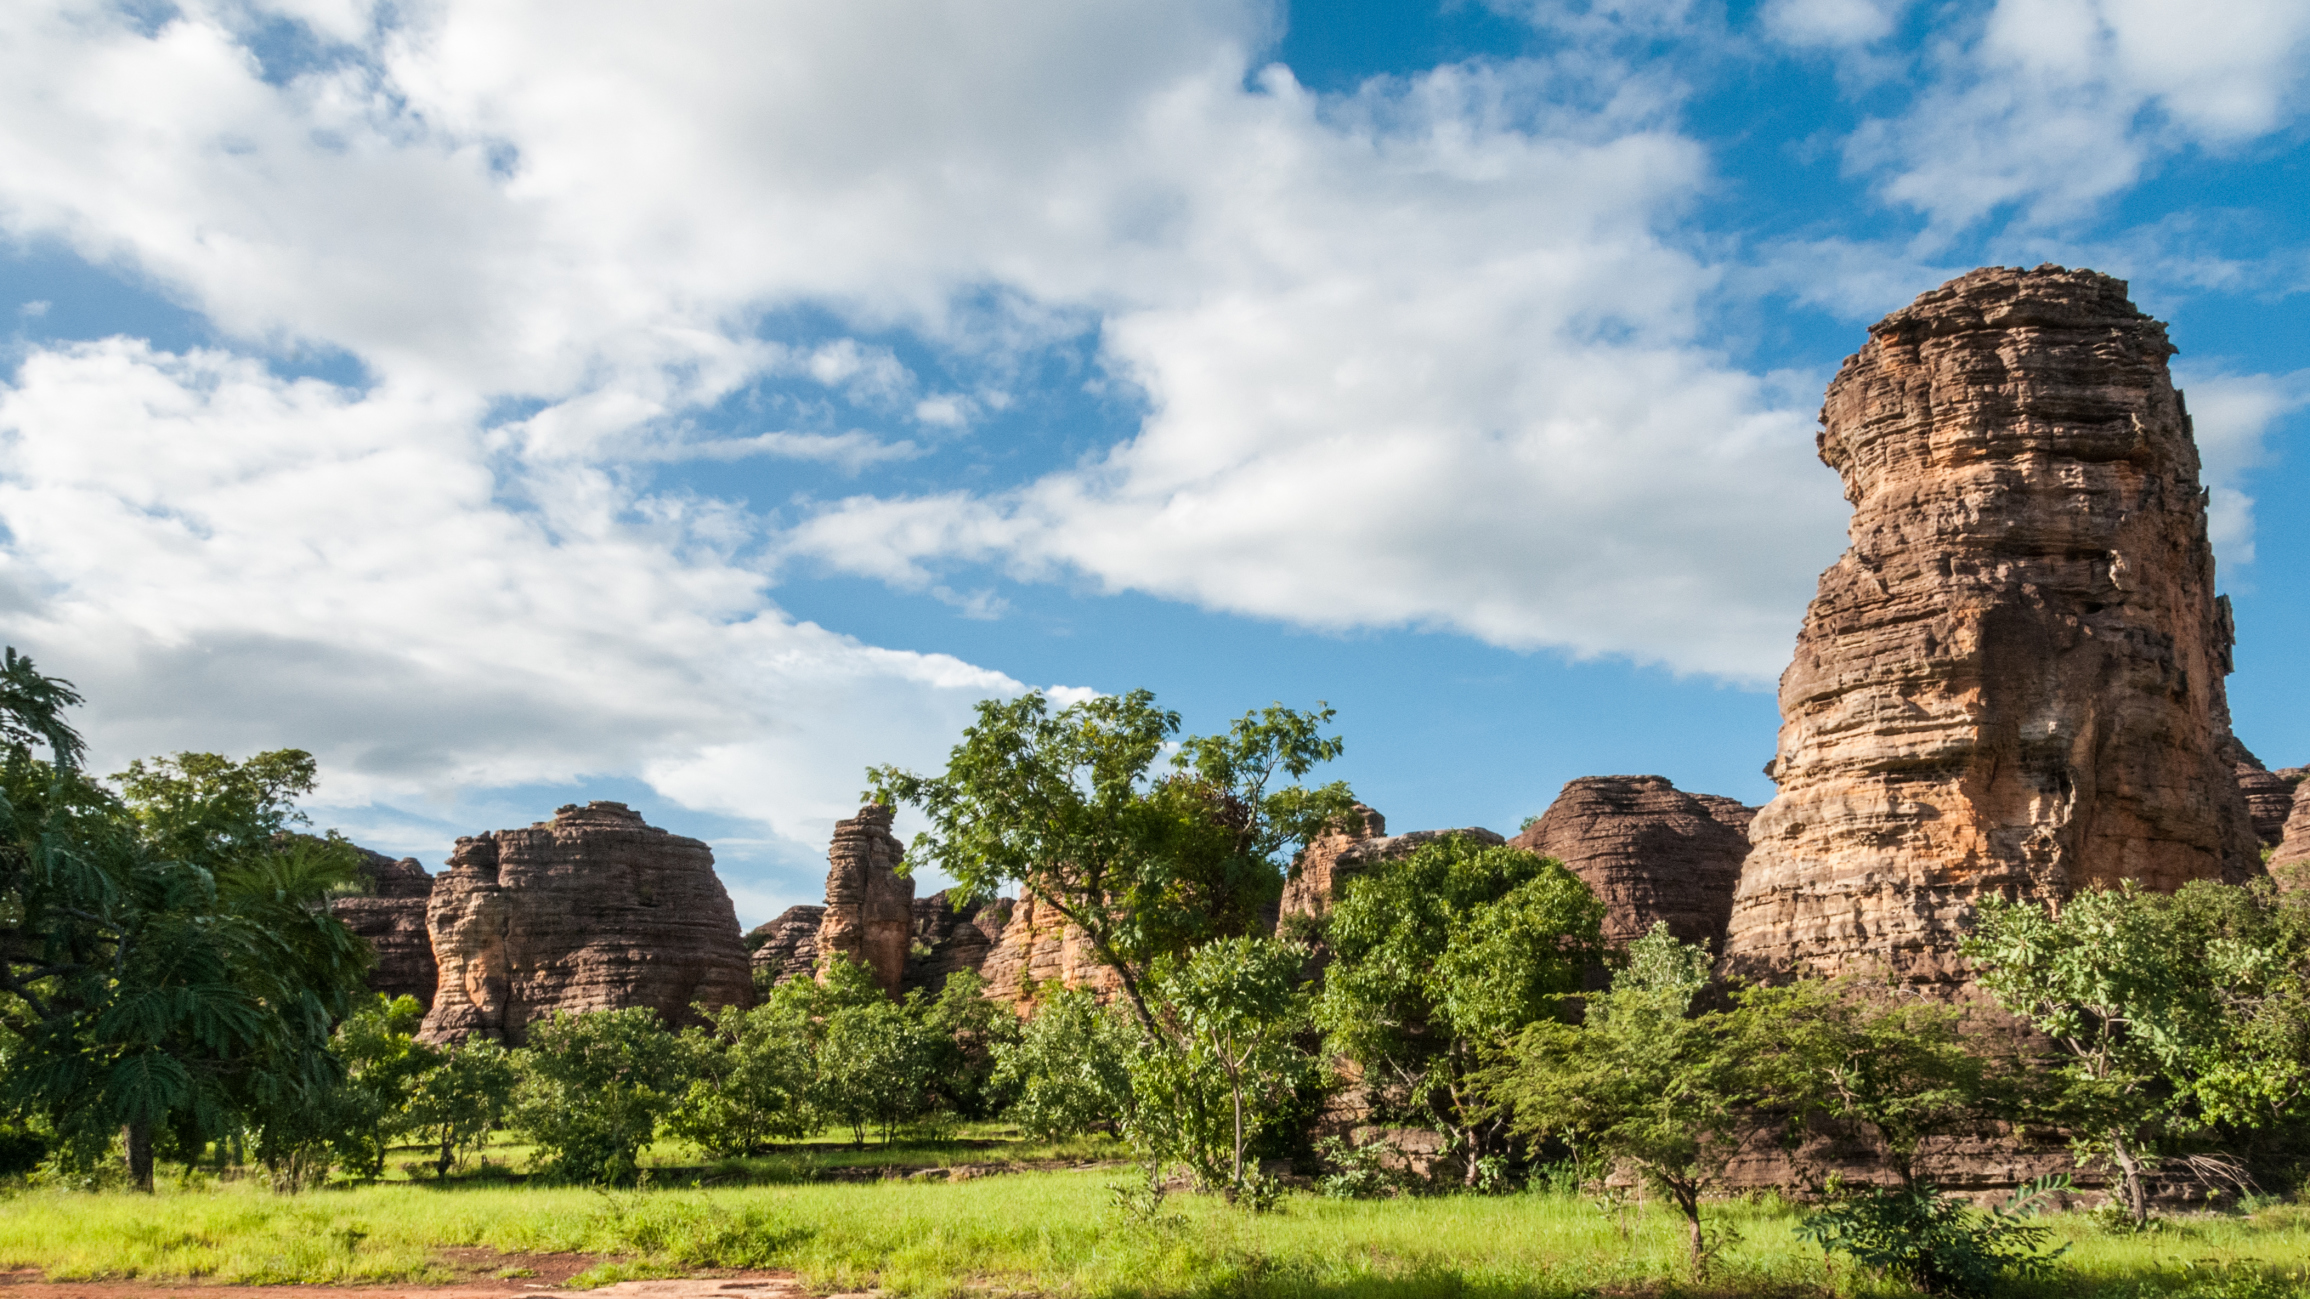 Dramatic landscapes abound in this little-known African country